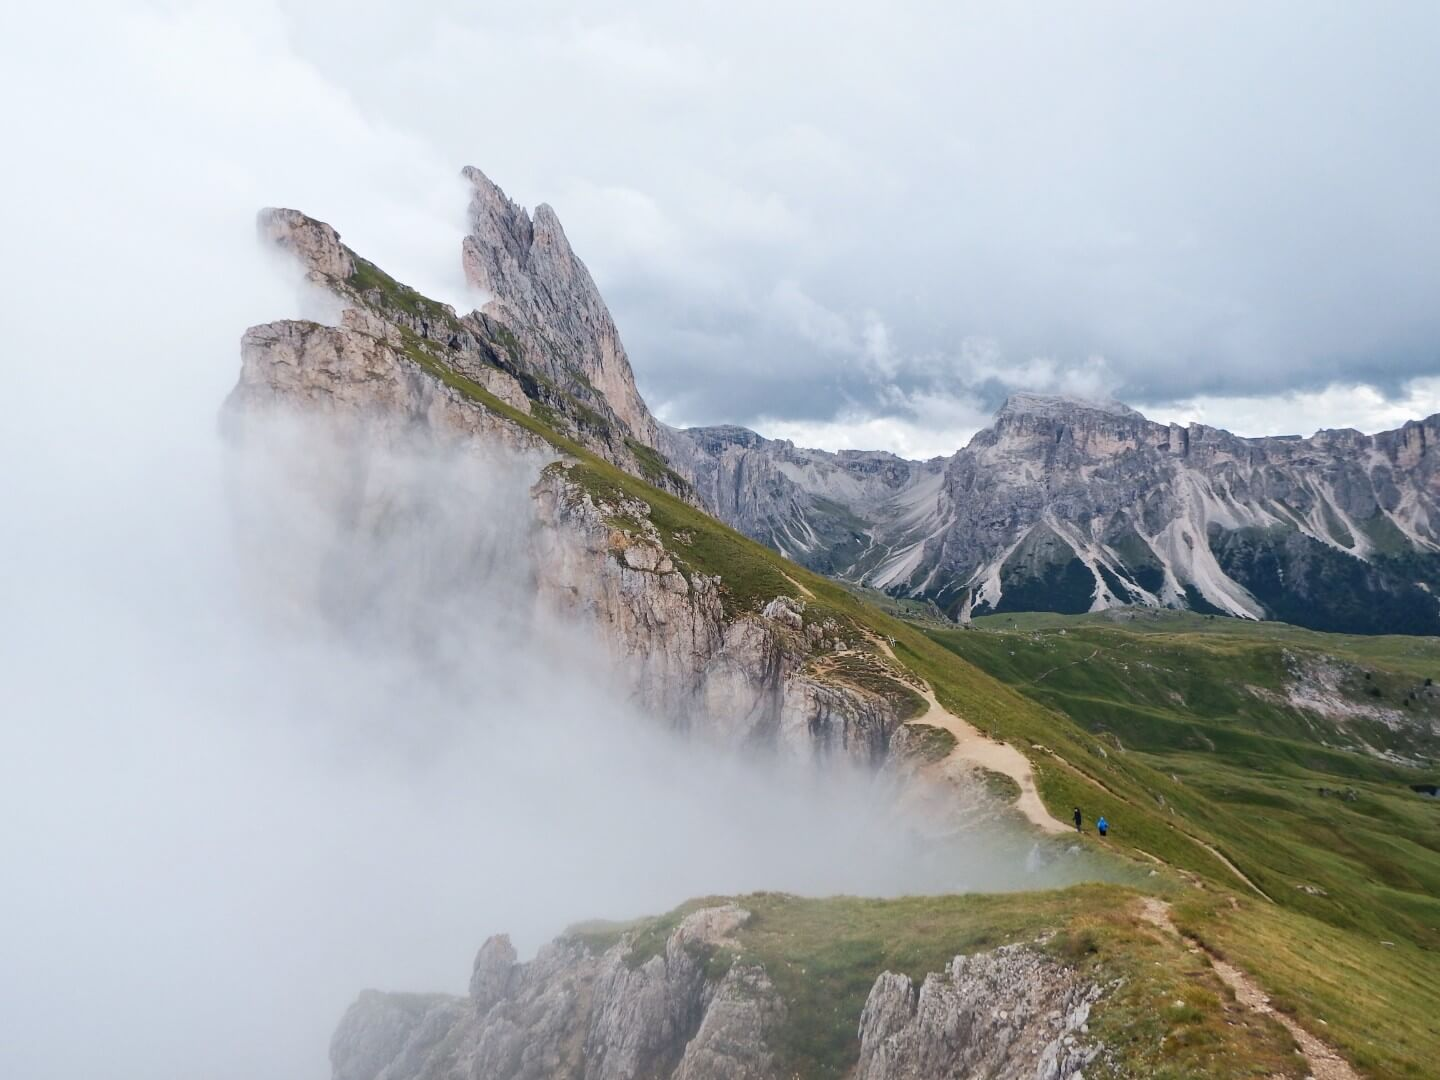 Seceda, Fermeda Peaks, Dolomites | Moon & Honey Travel